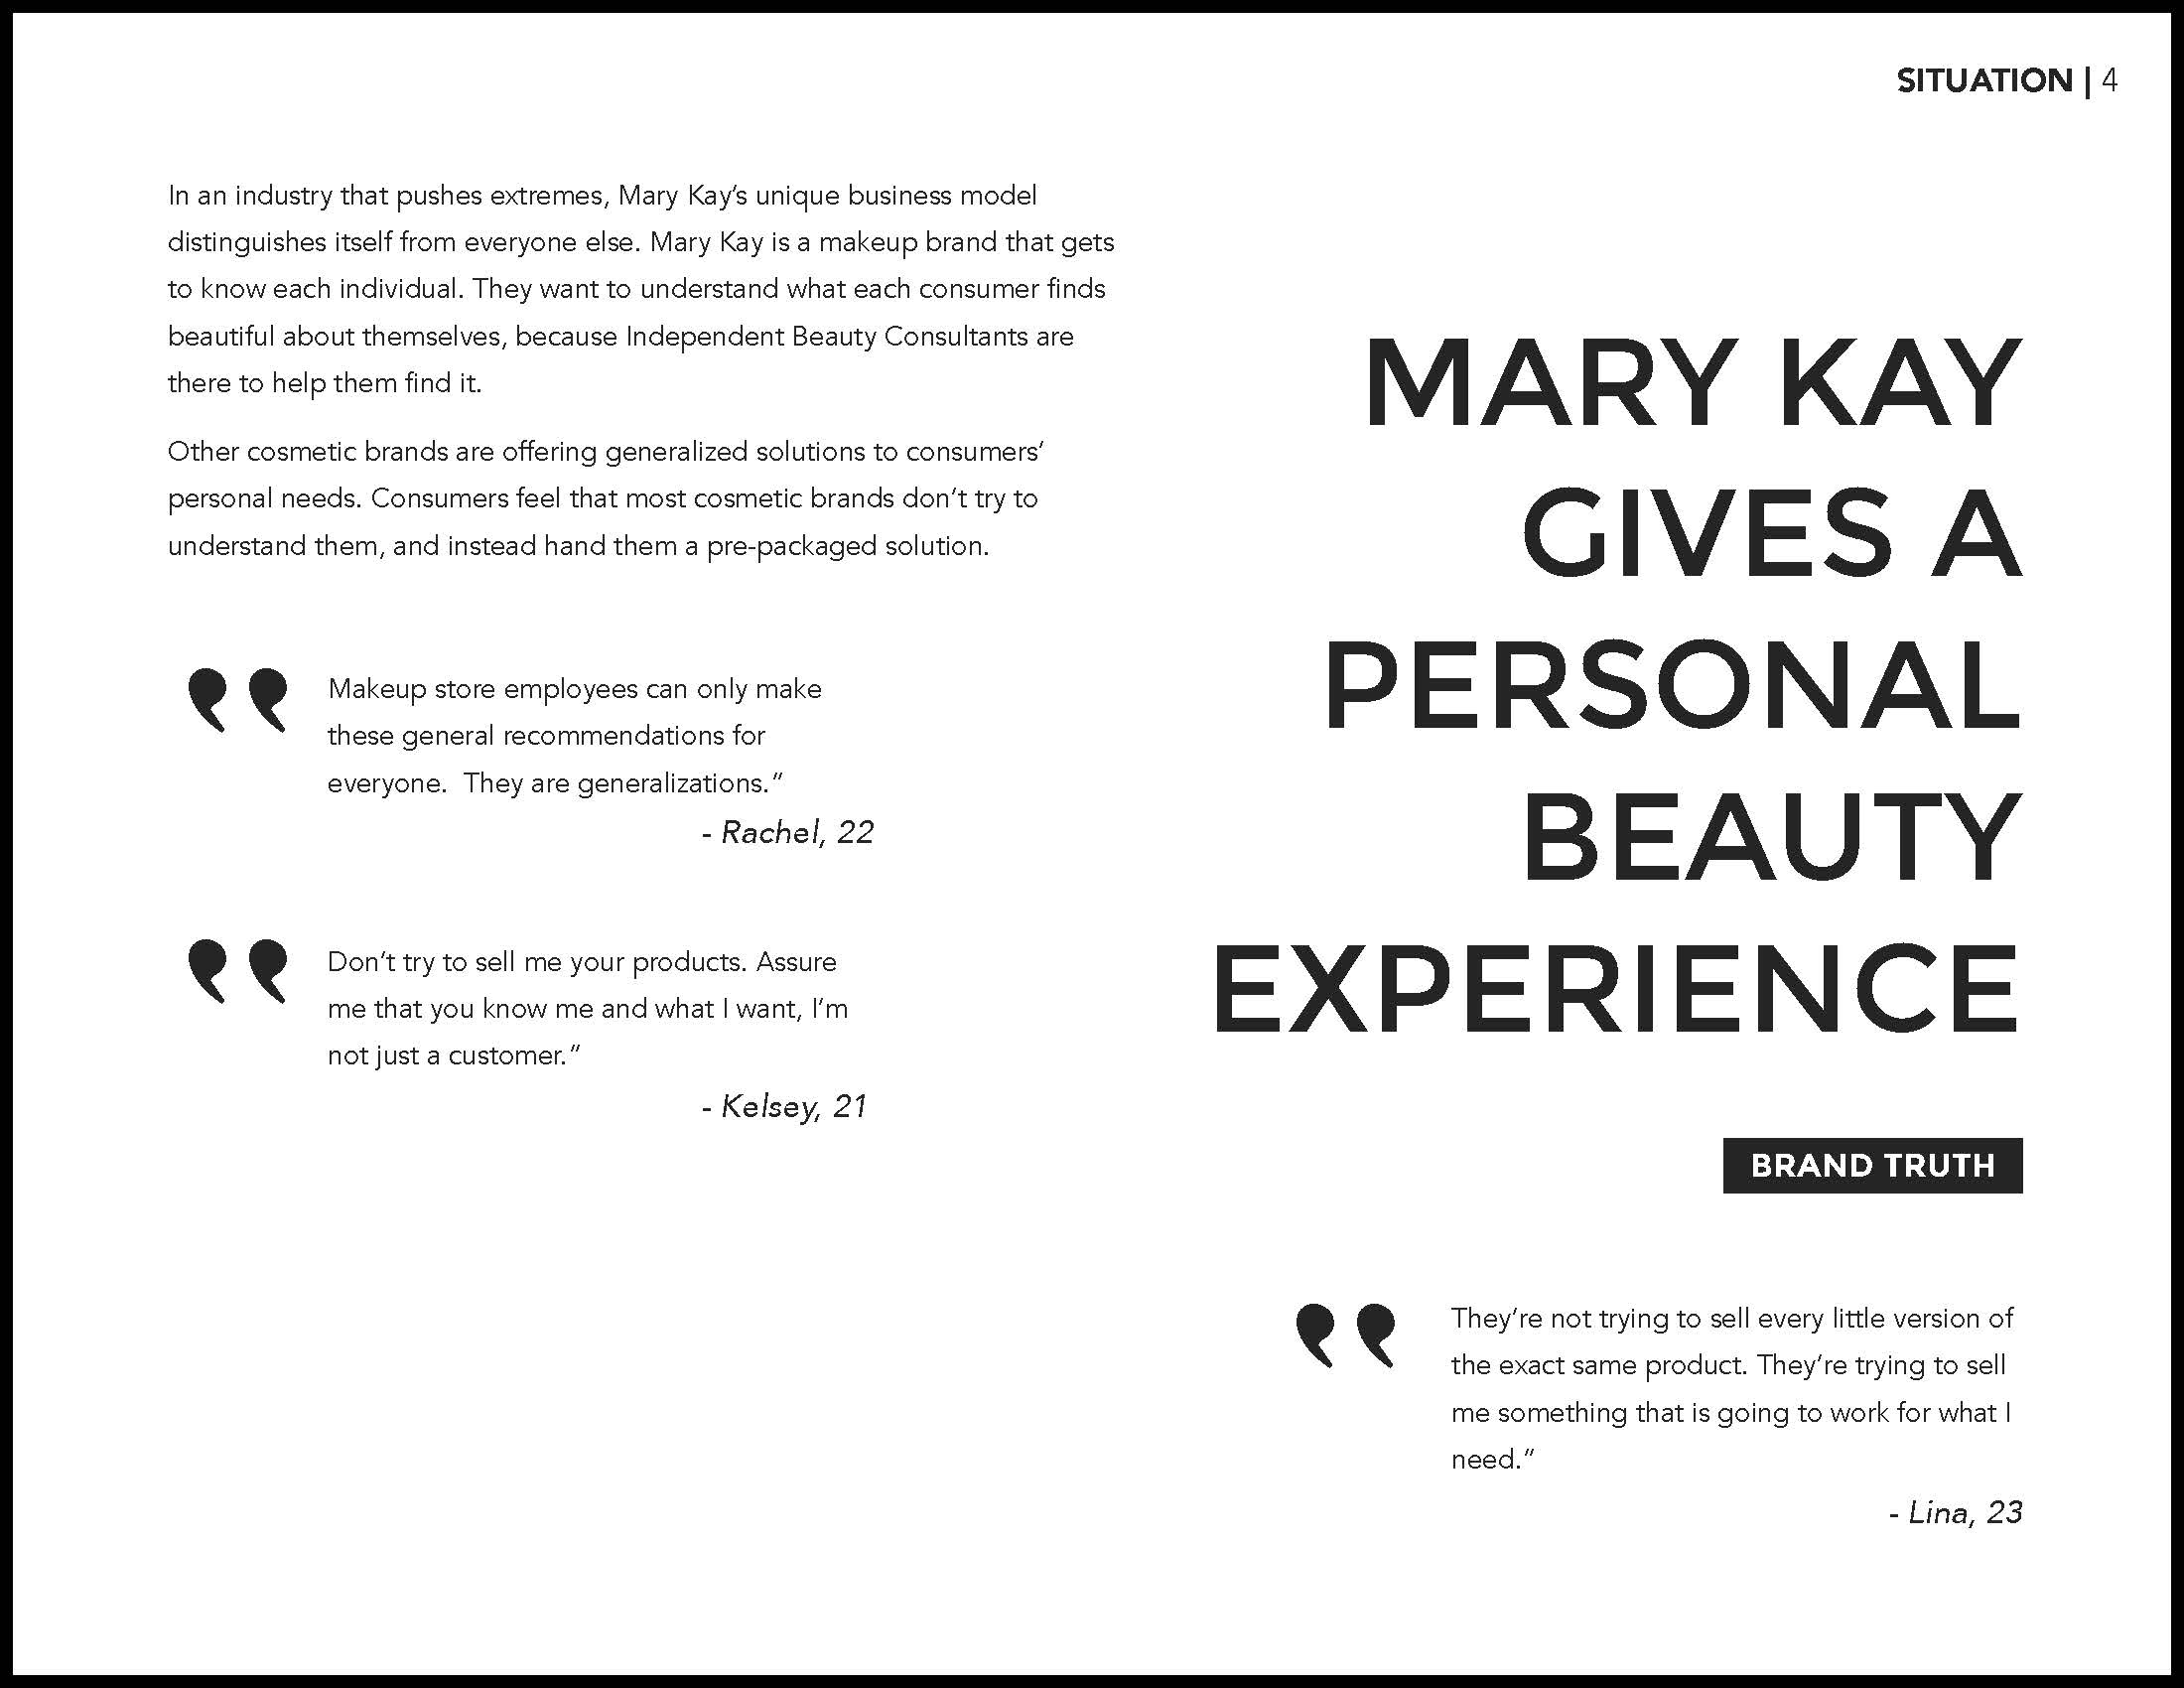 Mary Kay Plans Book Team 440_Page_04.jpg